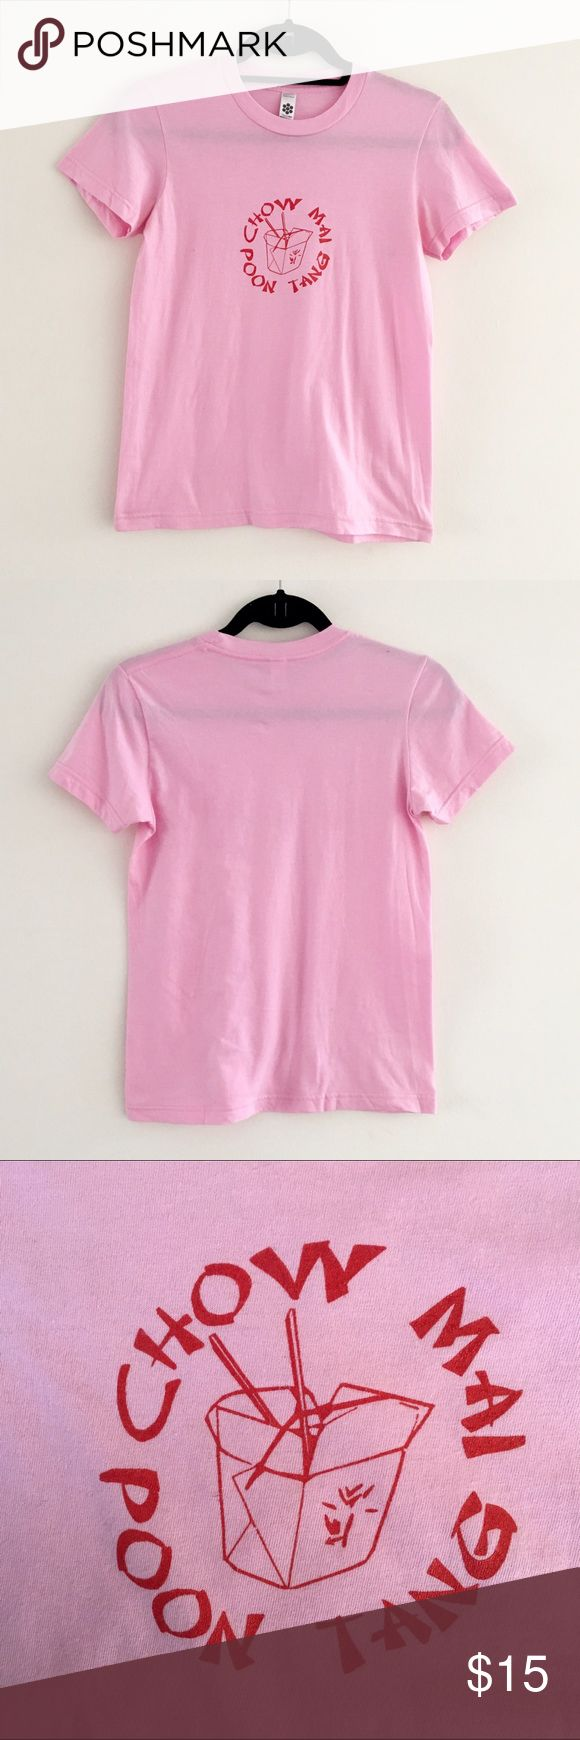 American Apparel Pink TShirt Funny and cute pink TShirt by American Apparel. Size M in Classic Girl Fit (which is the junior fit) 100% cotton. In great condition. Gently used. American Apparel Tops Tees - Short Sleeve